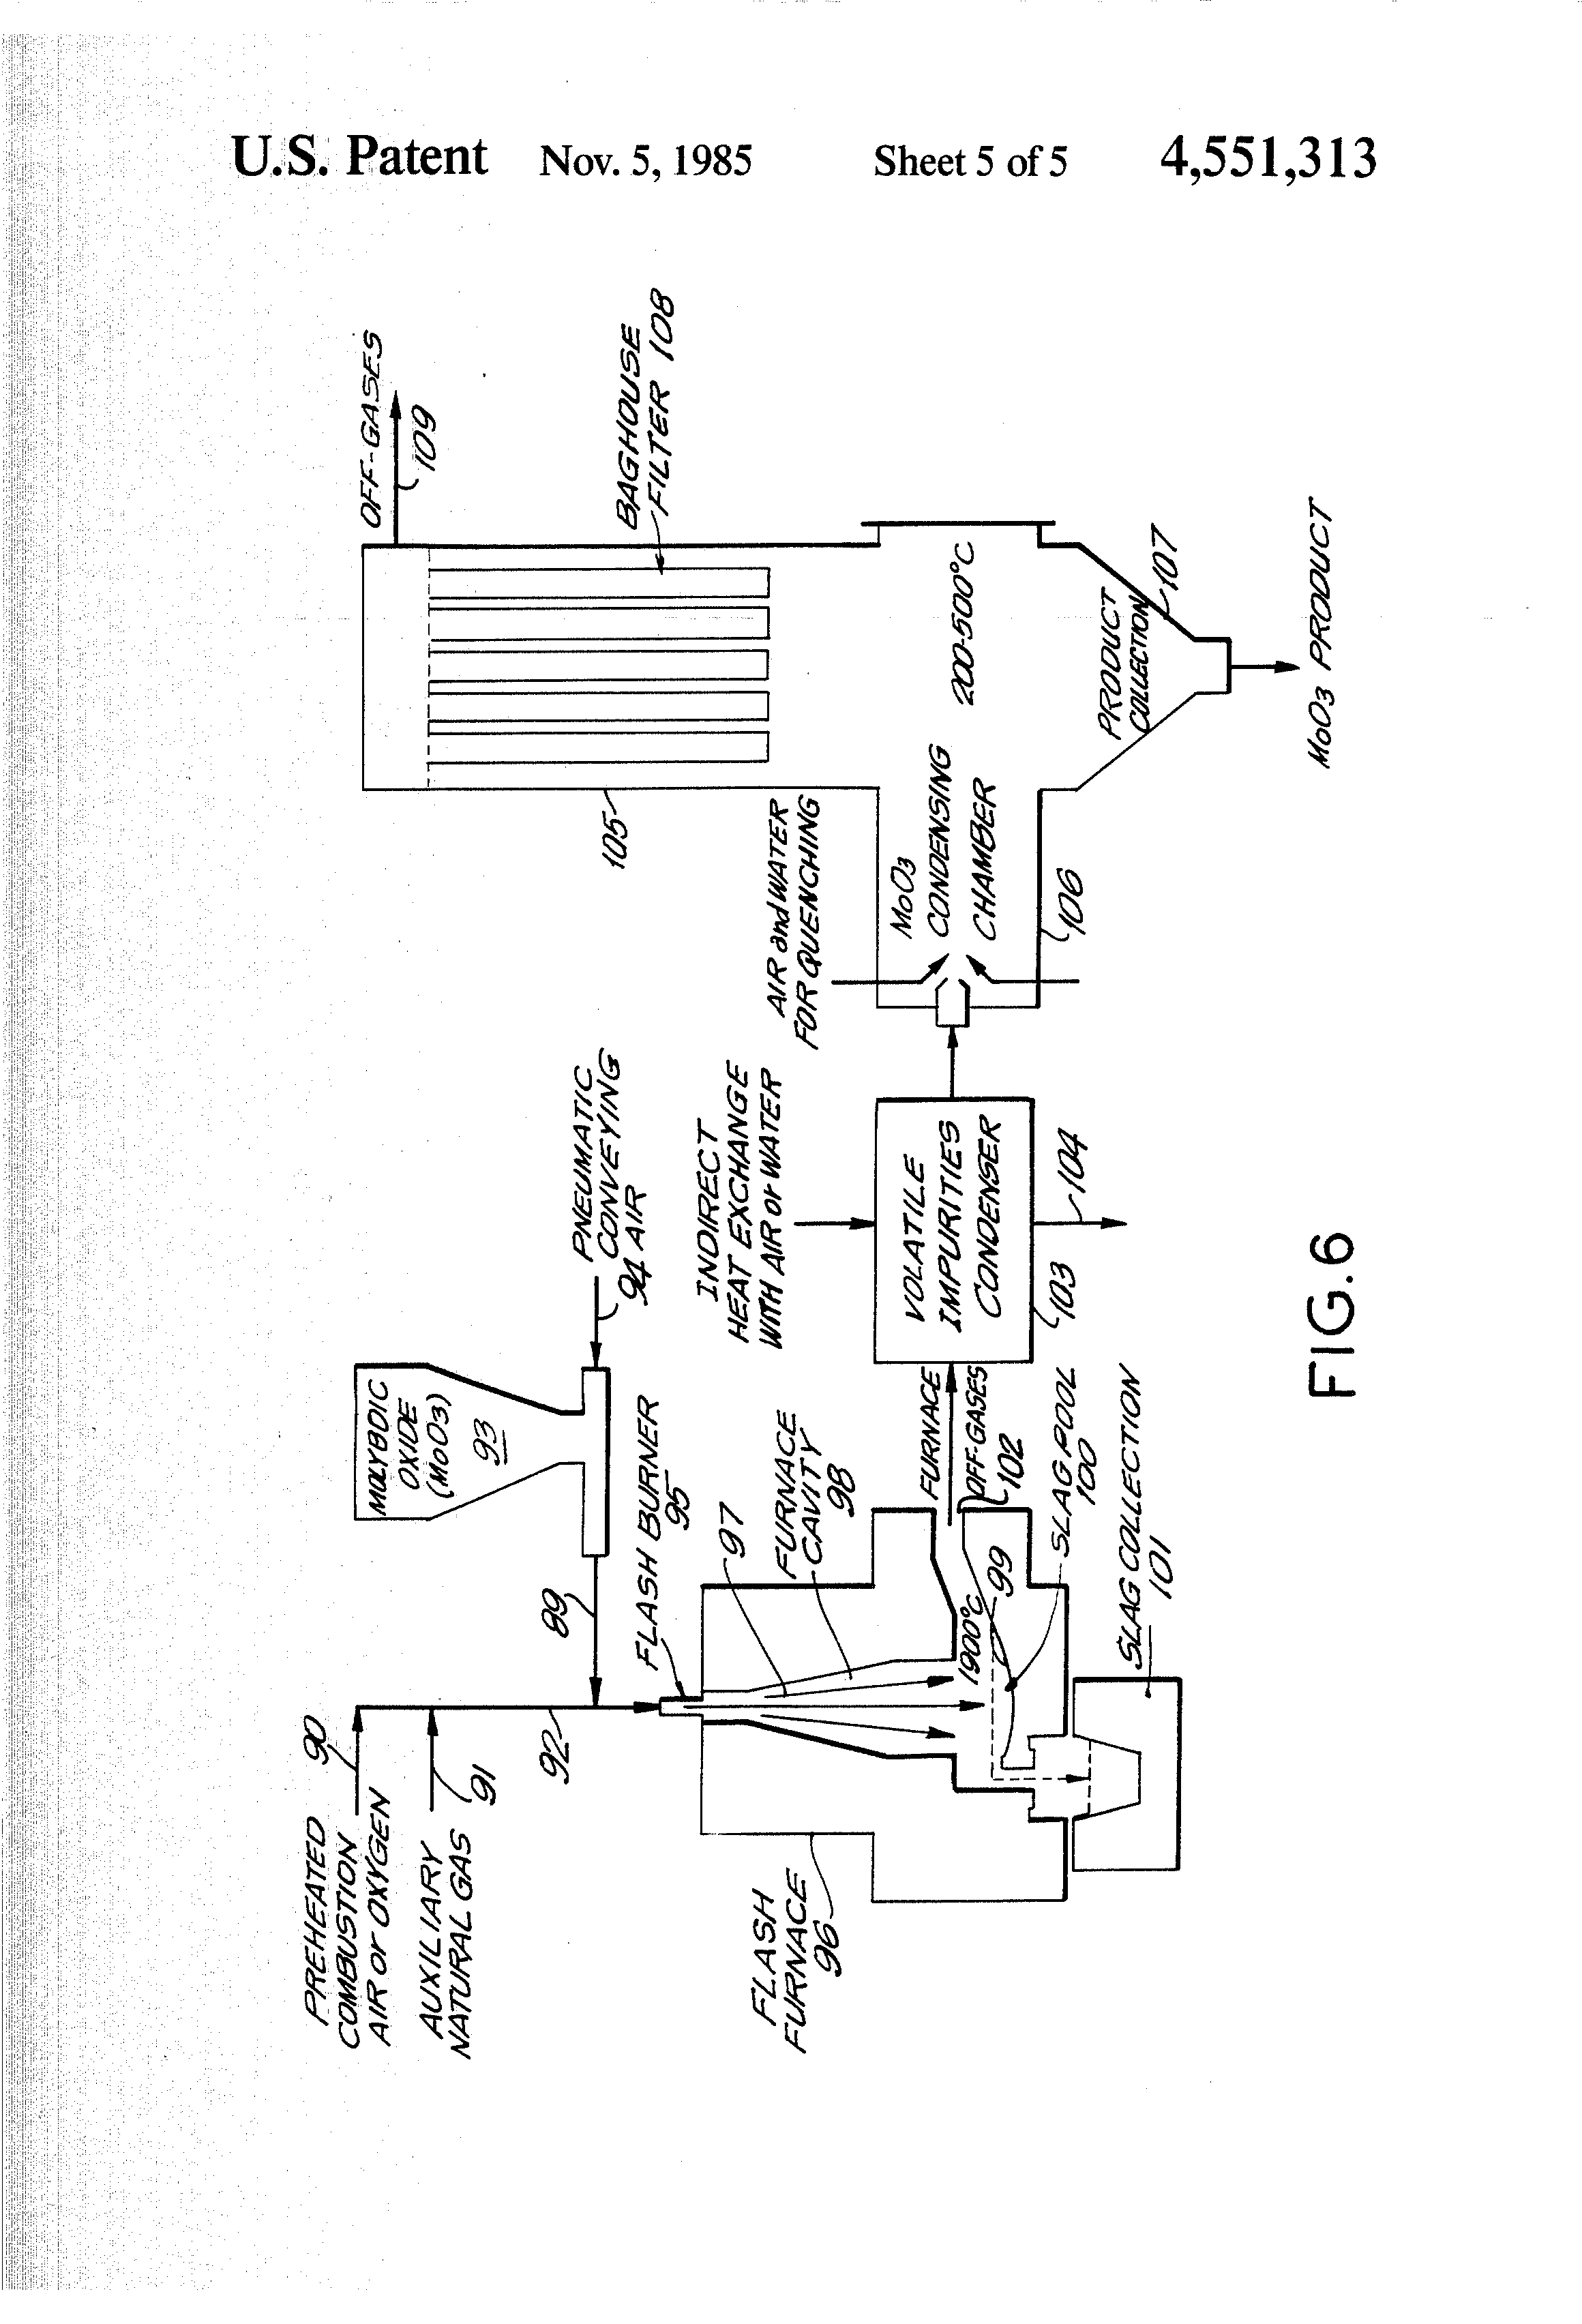 Ford dexta wiring diagram on patent us4551313 flash sublimation and purification of Ford Wiring Diagrams Automotive Ford 1900 Wiring Diagram